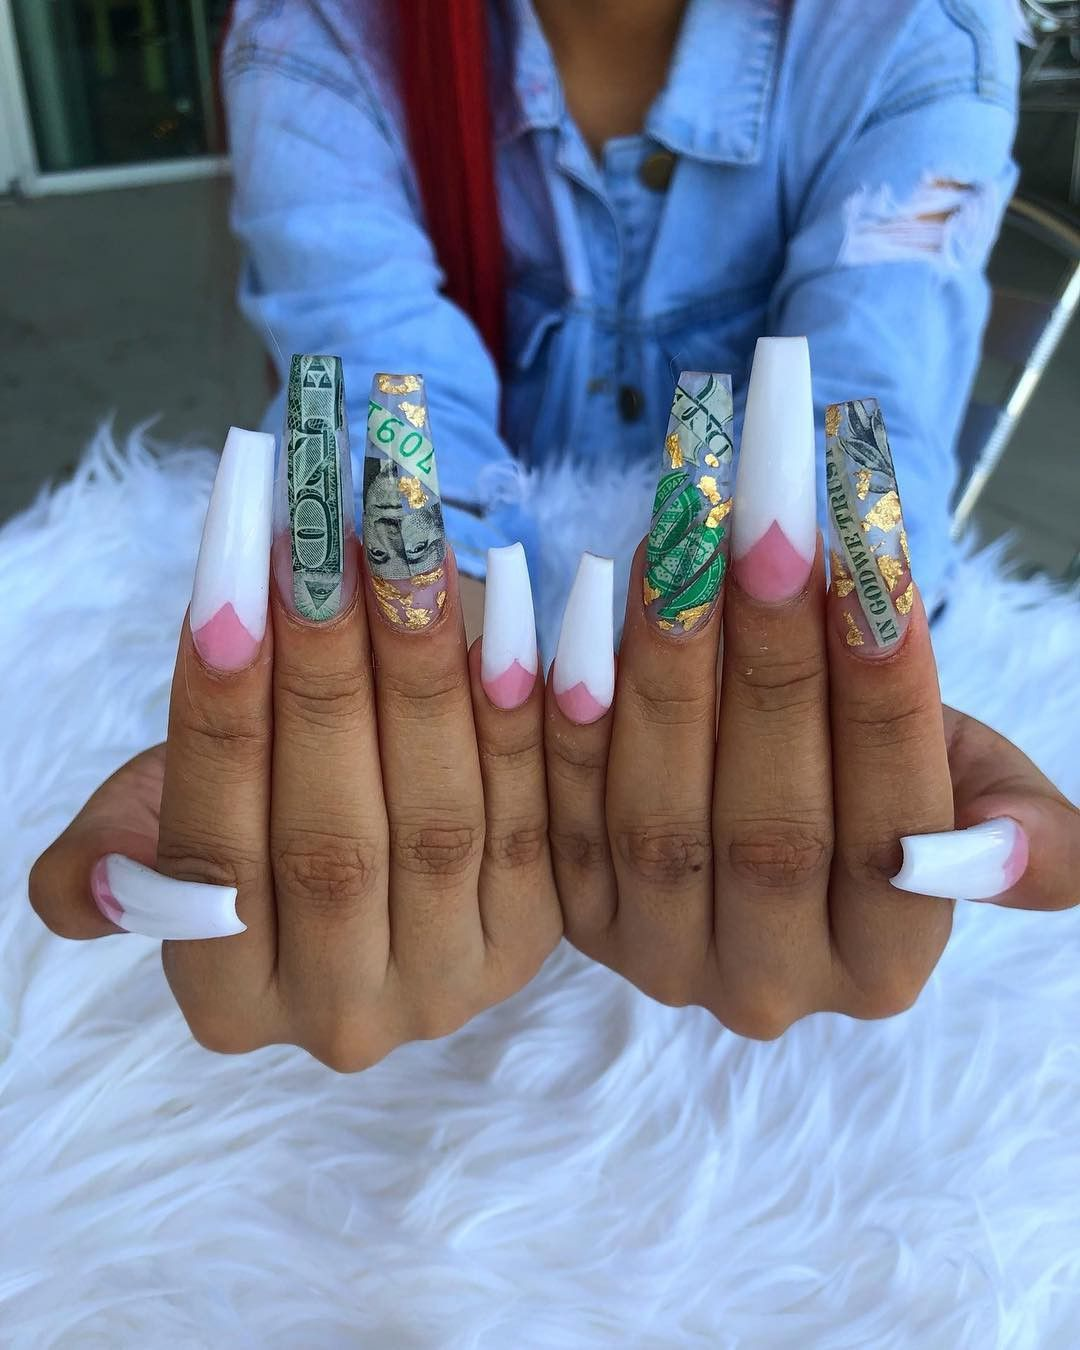 Pin by Hola hermoso💋 on Nailed it in 2019 | Nails, Ghetto ...